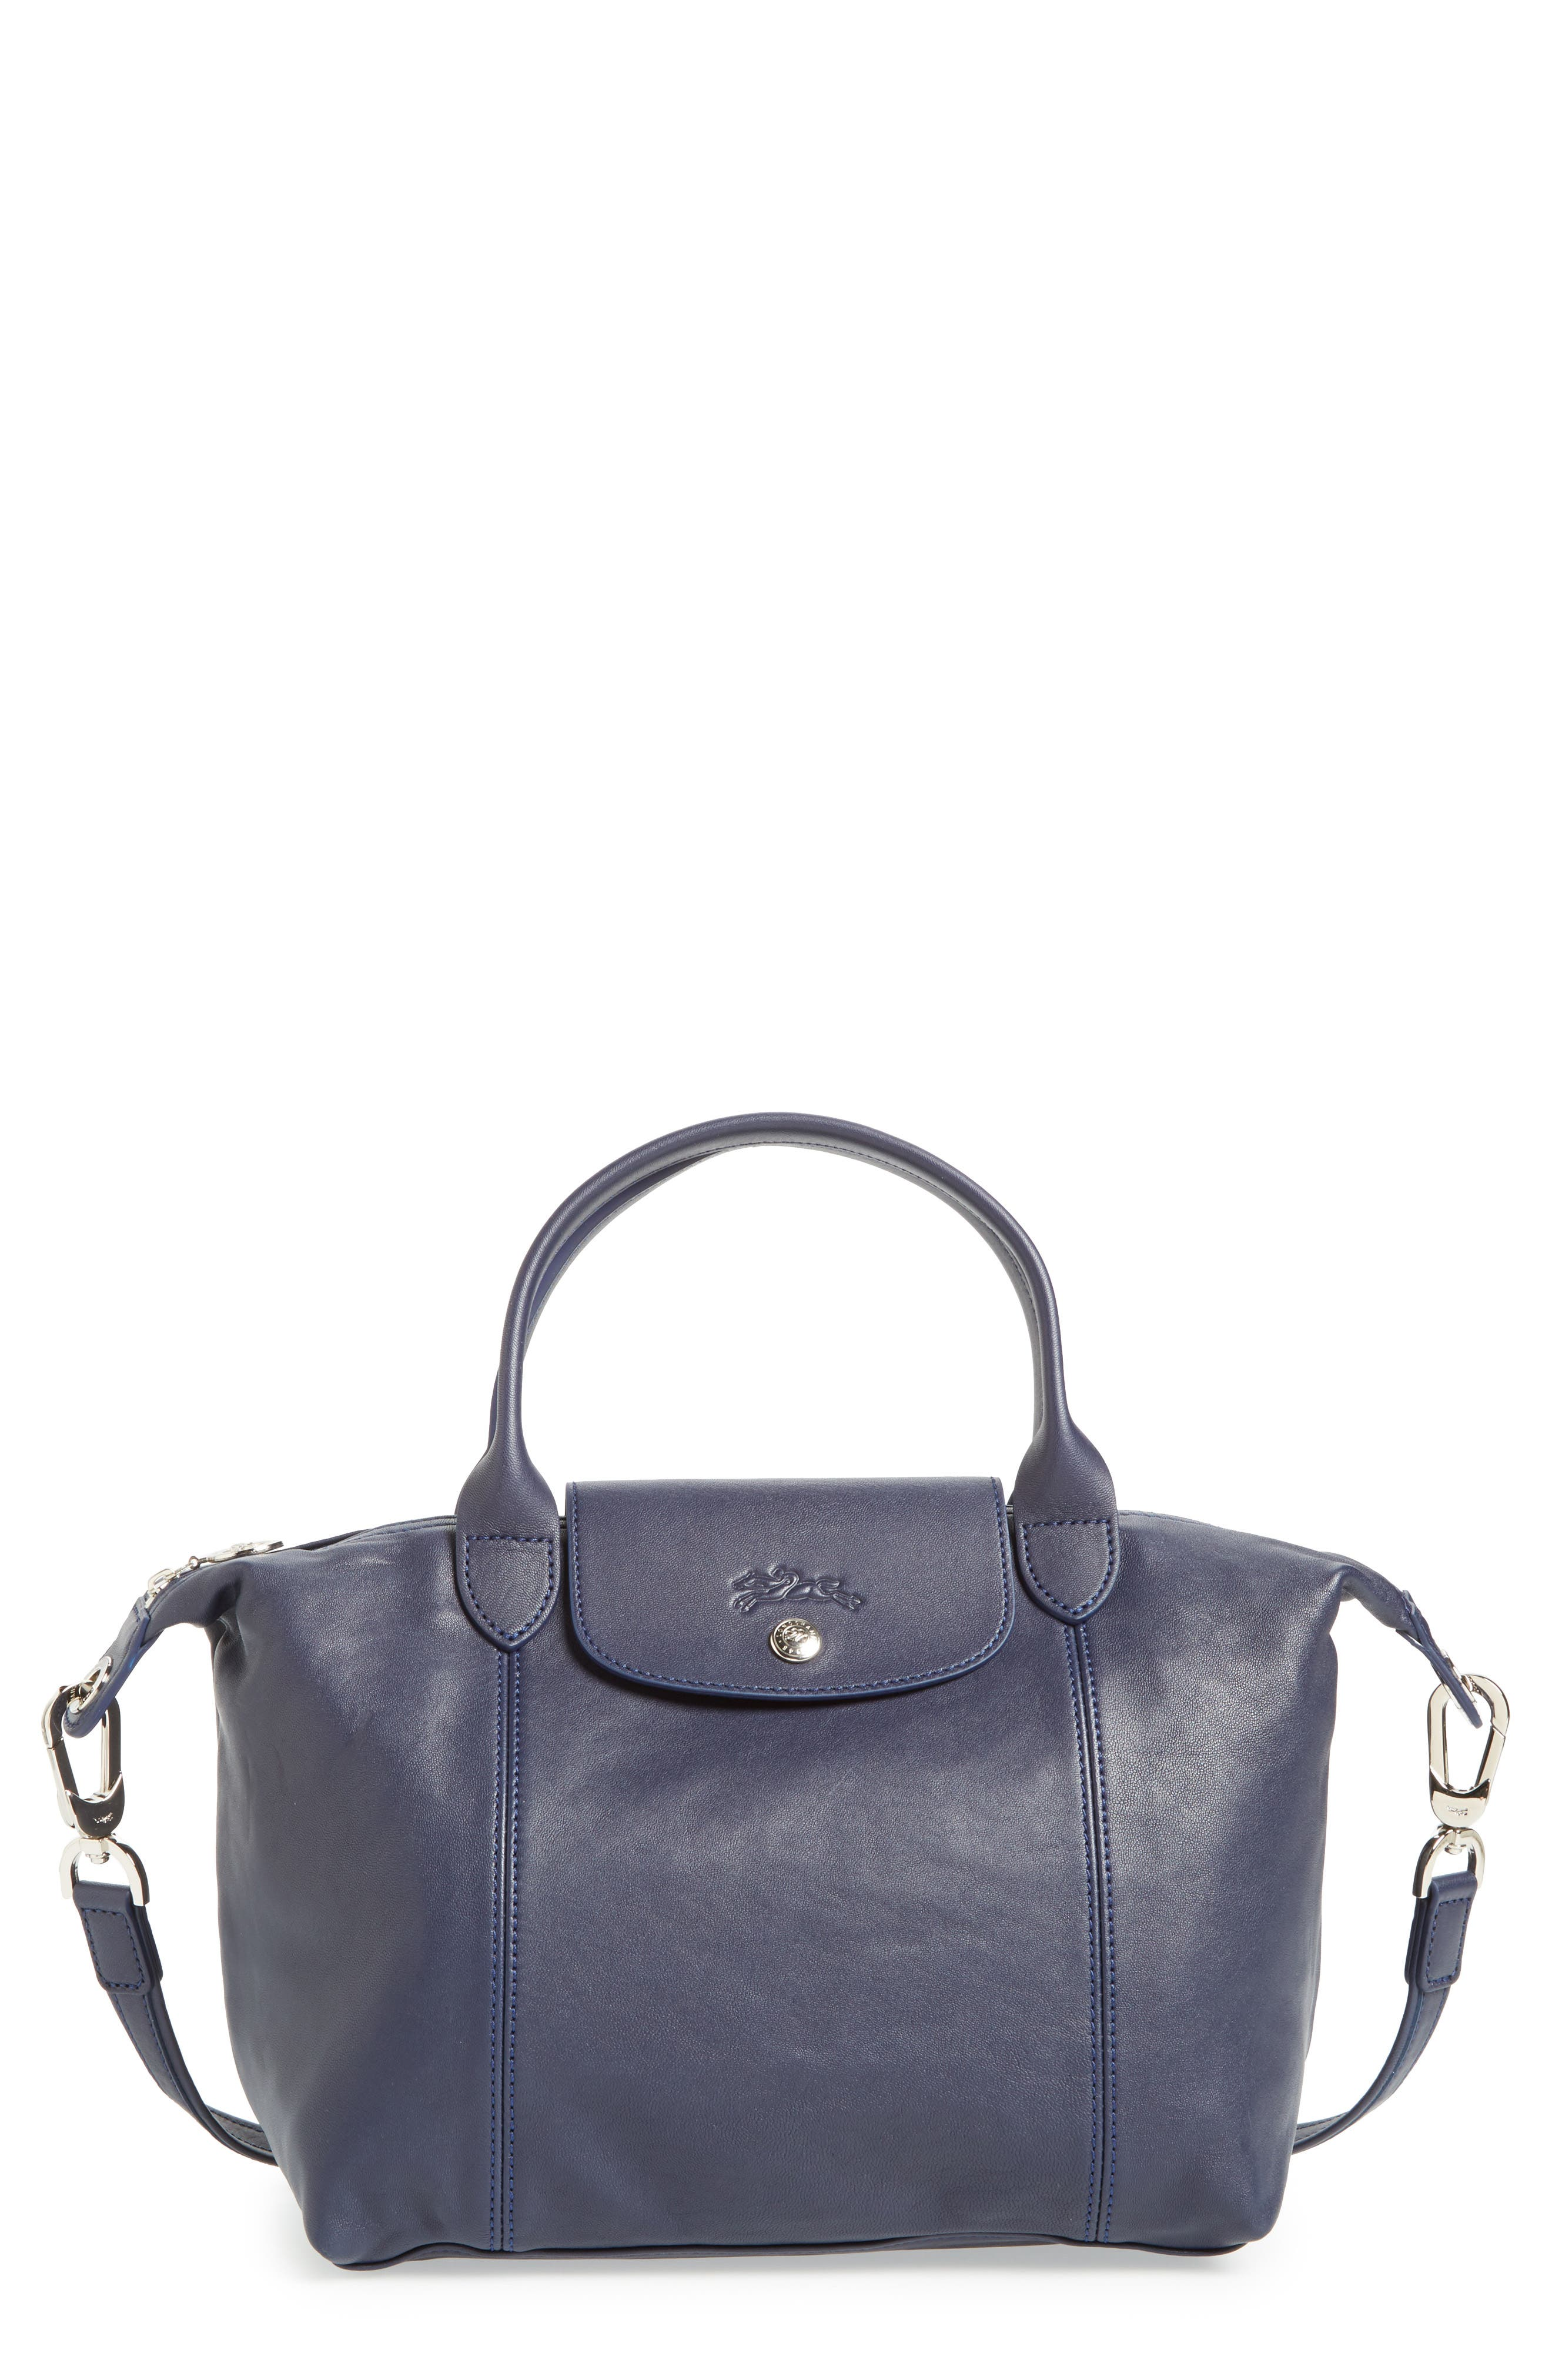 Small 'Le Pliage Cuir' Leather Top Handle Tote,                             Main thumbnail 15, color,